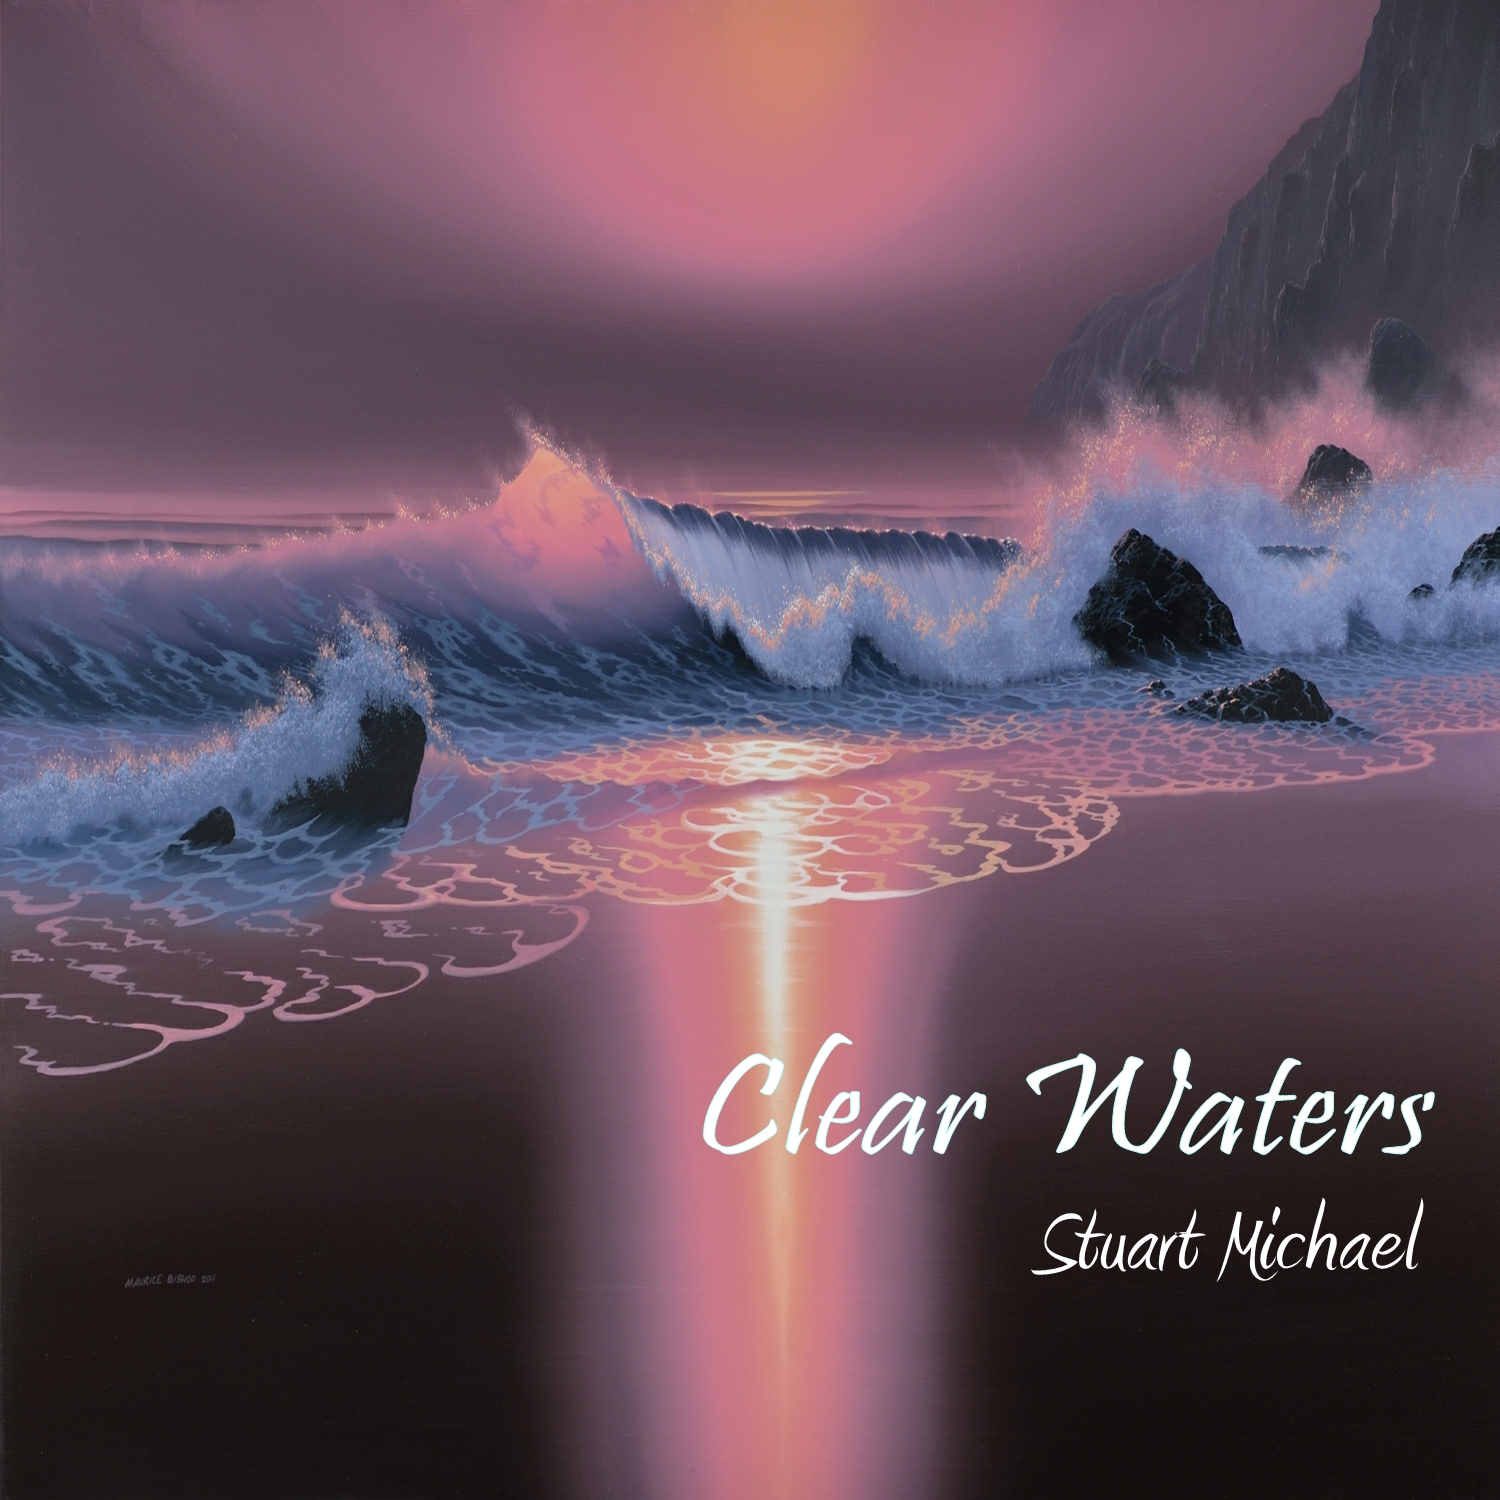 Clear Waters by Stuart Michael